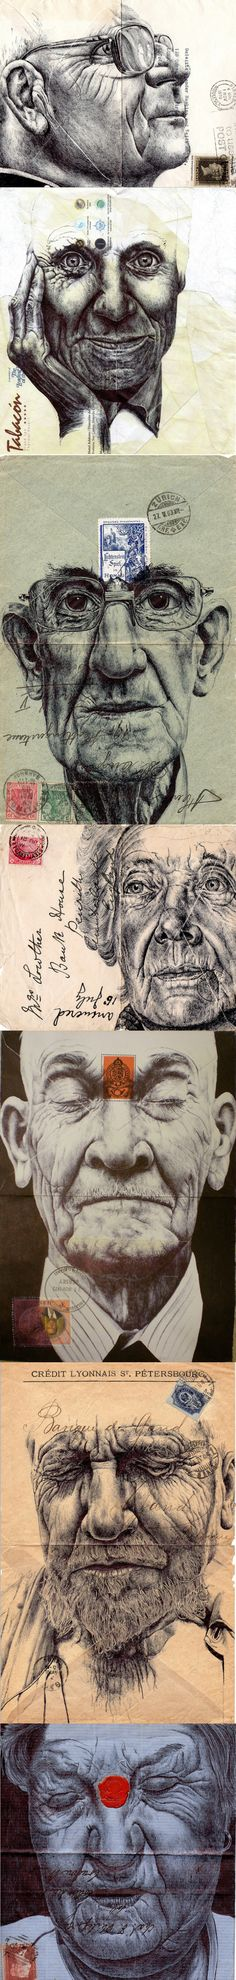 Mark Powell faces on vintage envelopes Biro Art, Biro Drawing, A Level Art Sketchbook, Gcse Art, Letter Art, Mail Art, Traditional Art, Art Inspo, New Art